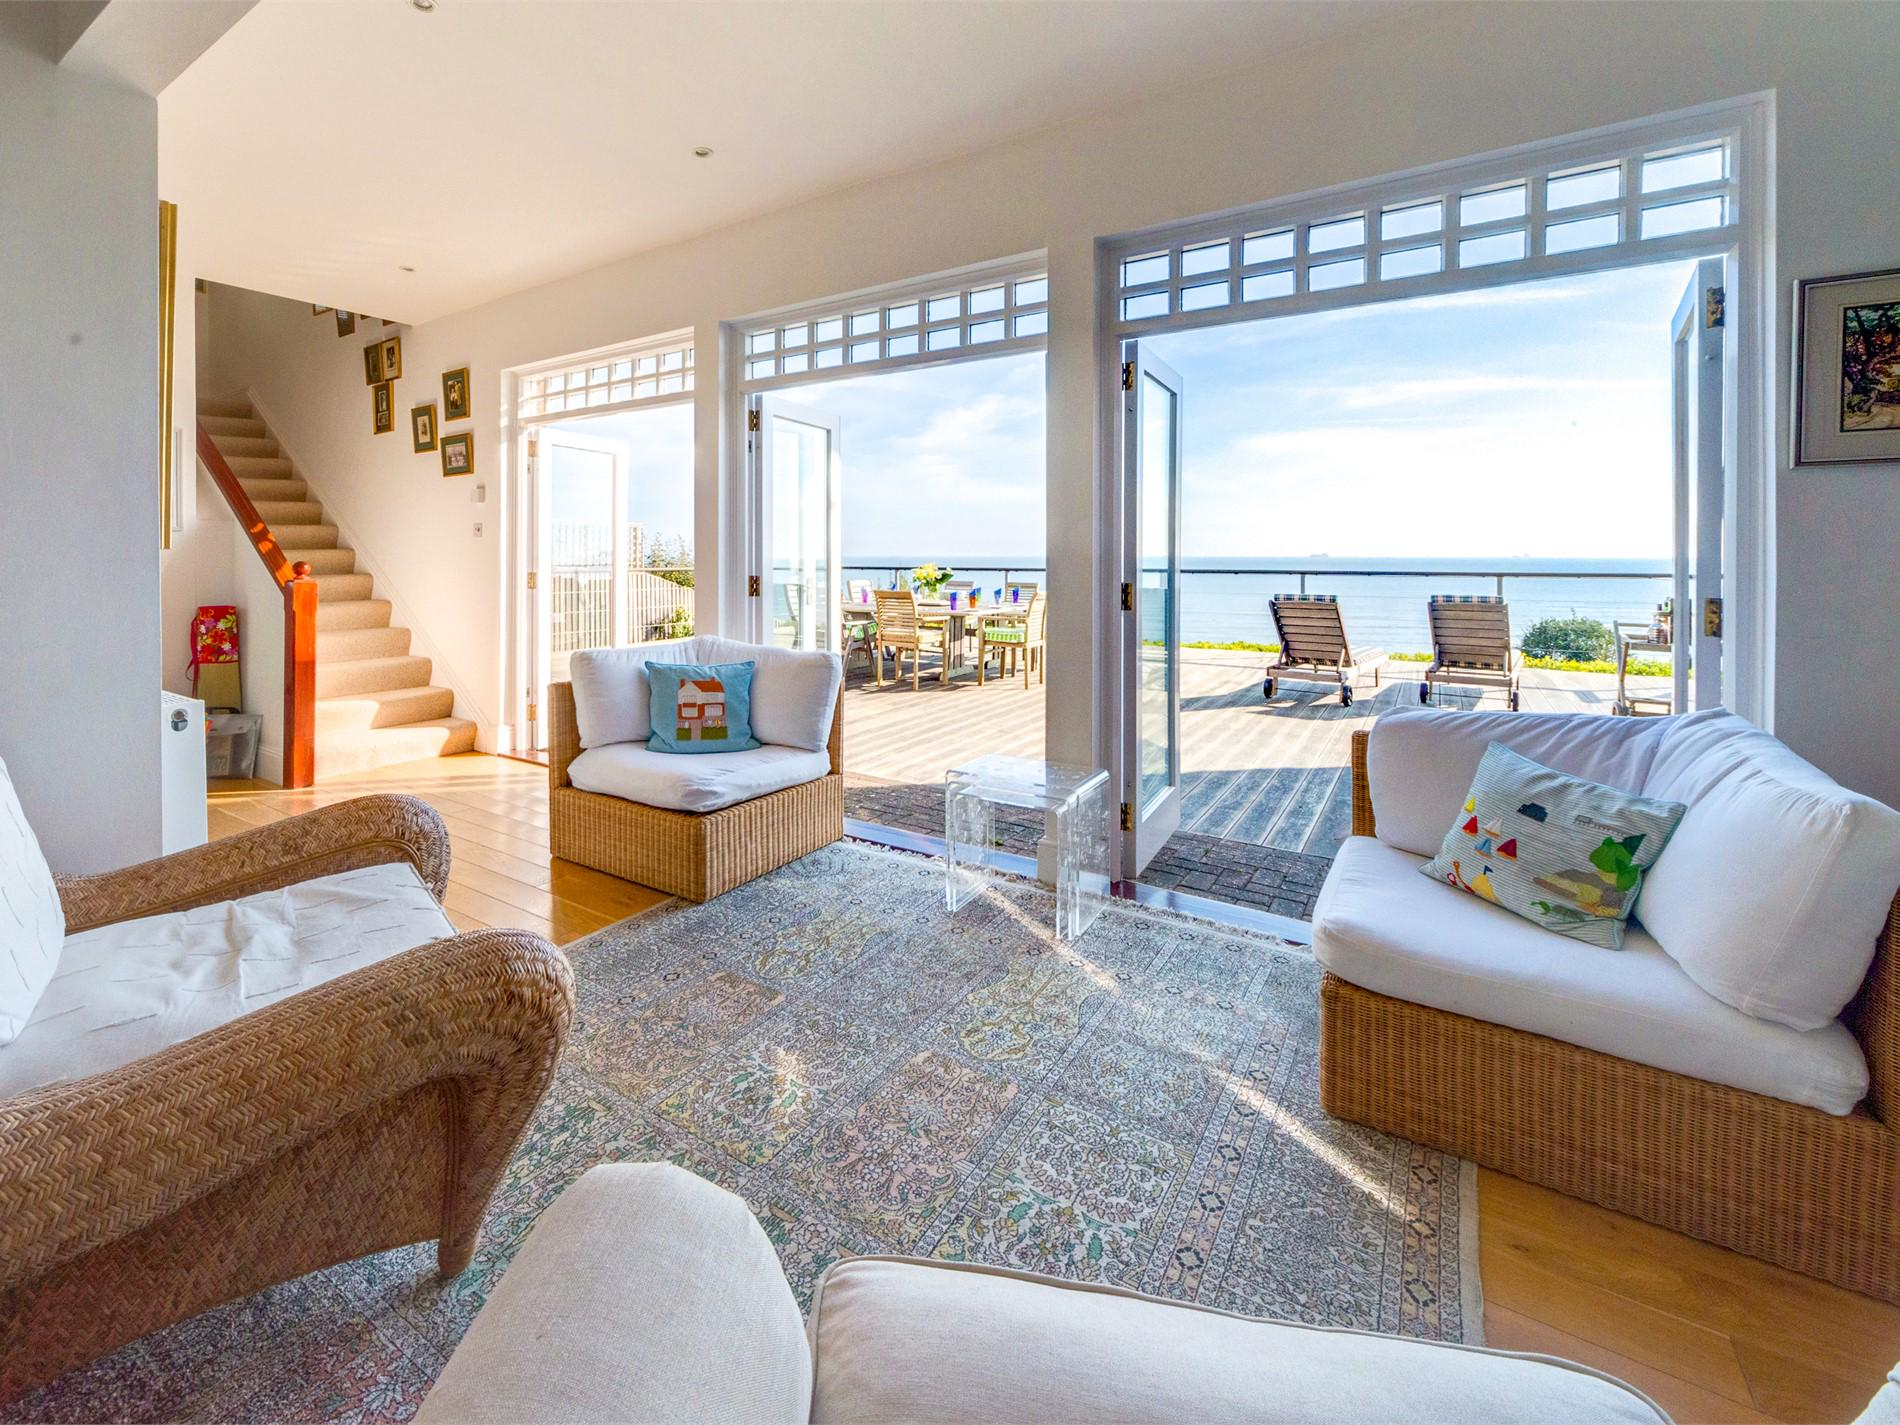 Self-Catering in Isle Of Wight holidays at Cool Places